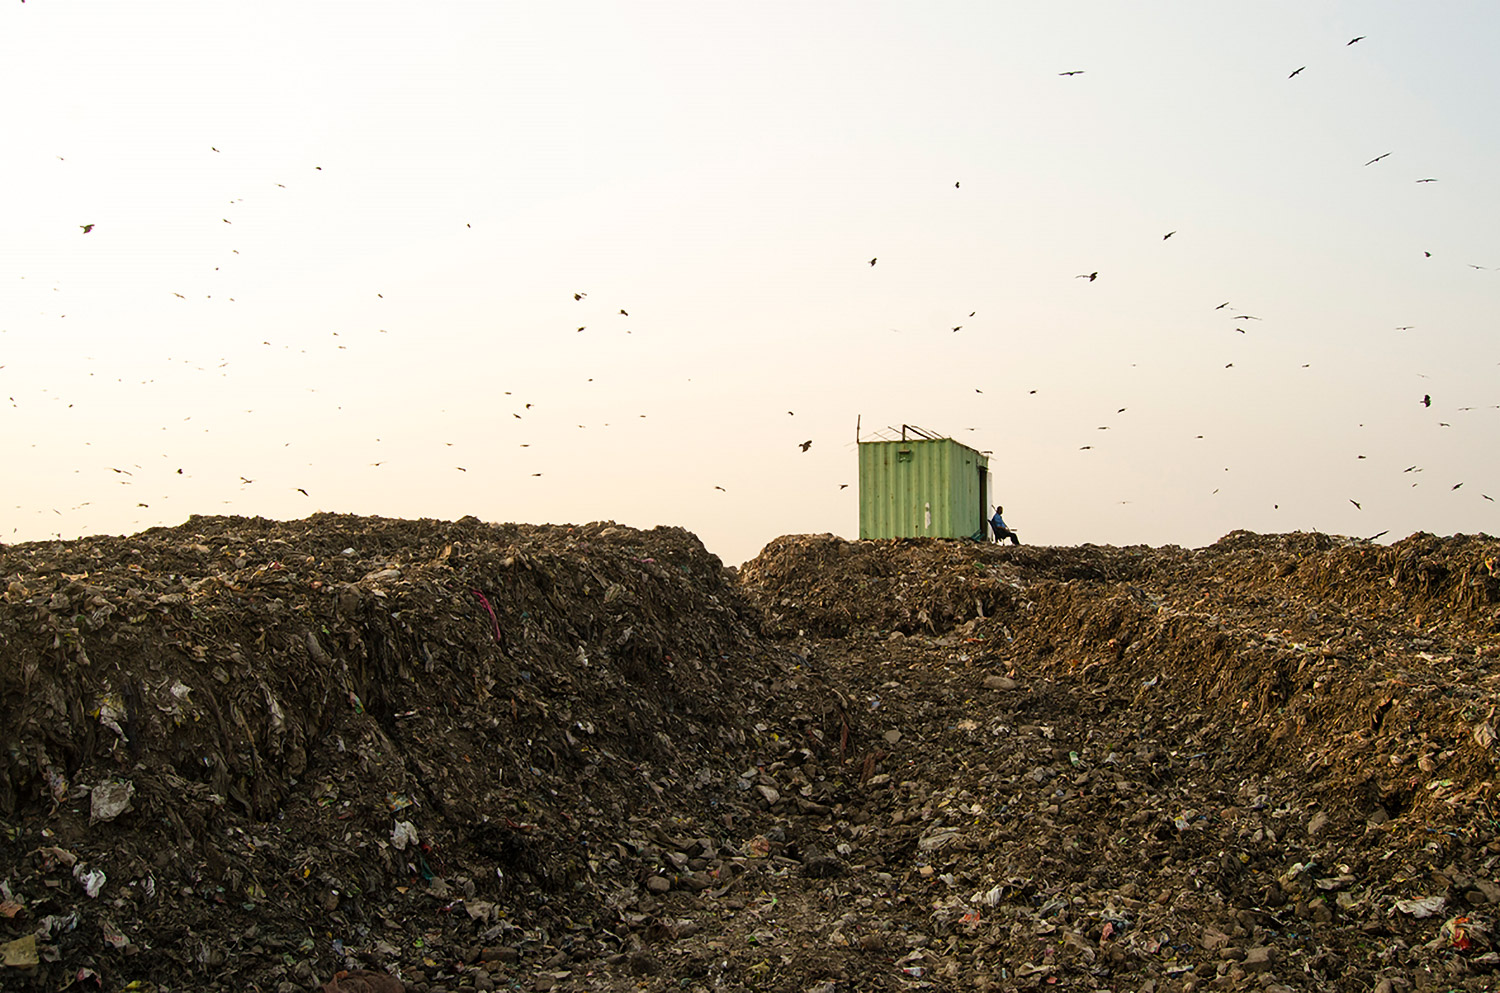 The Ghazipur Garbage Hill